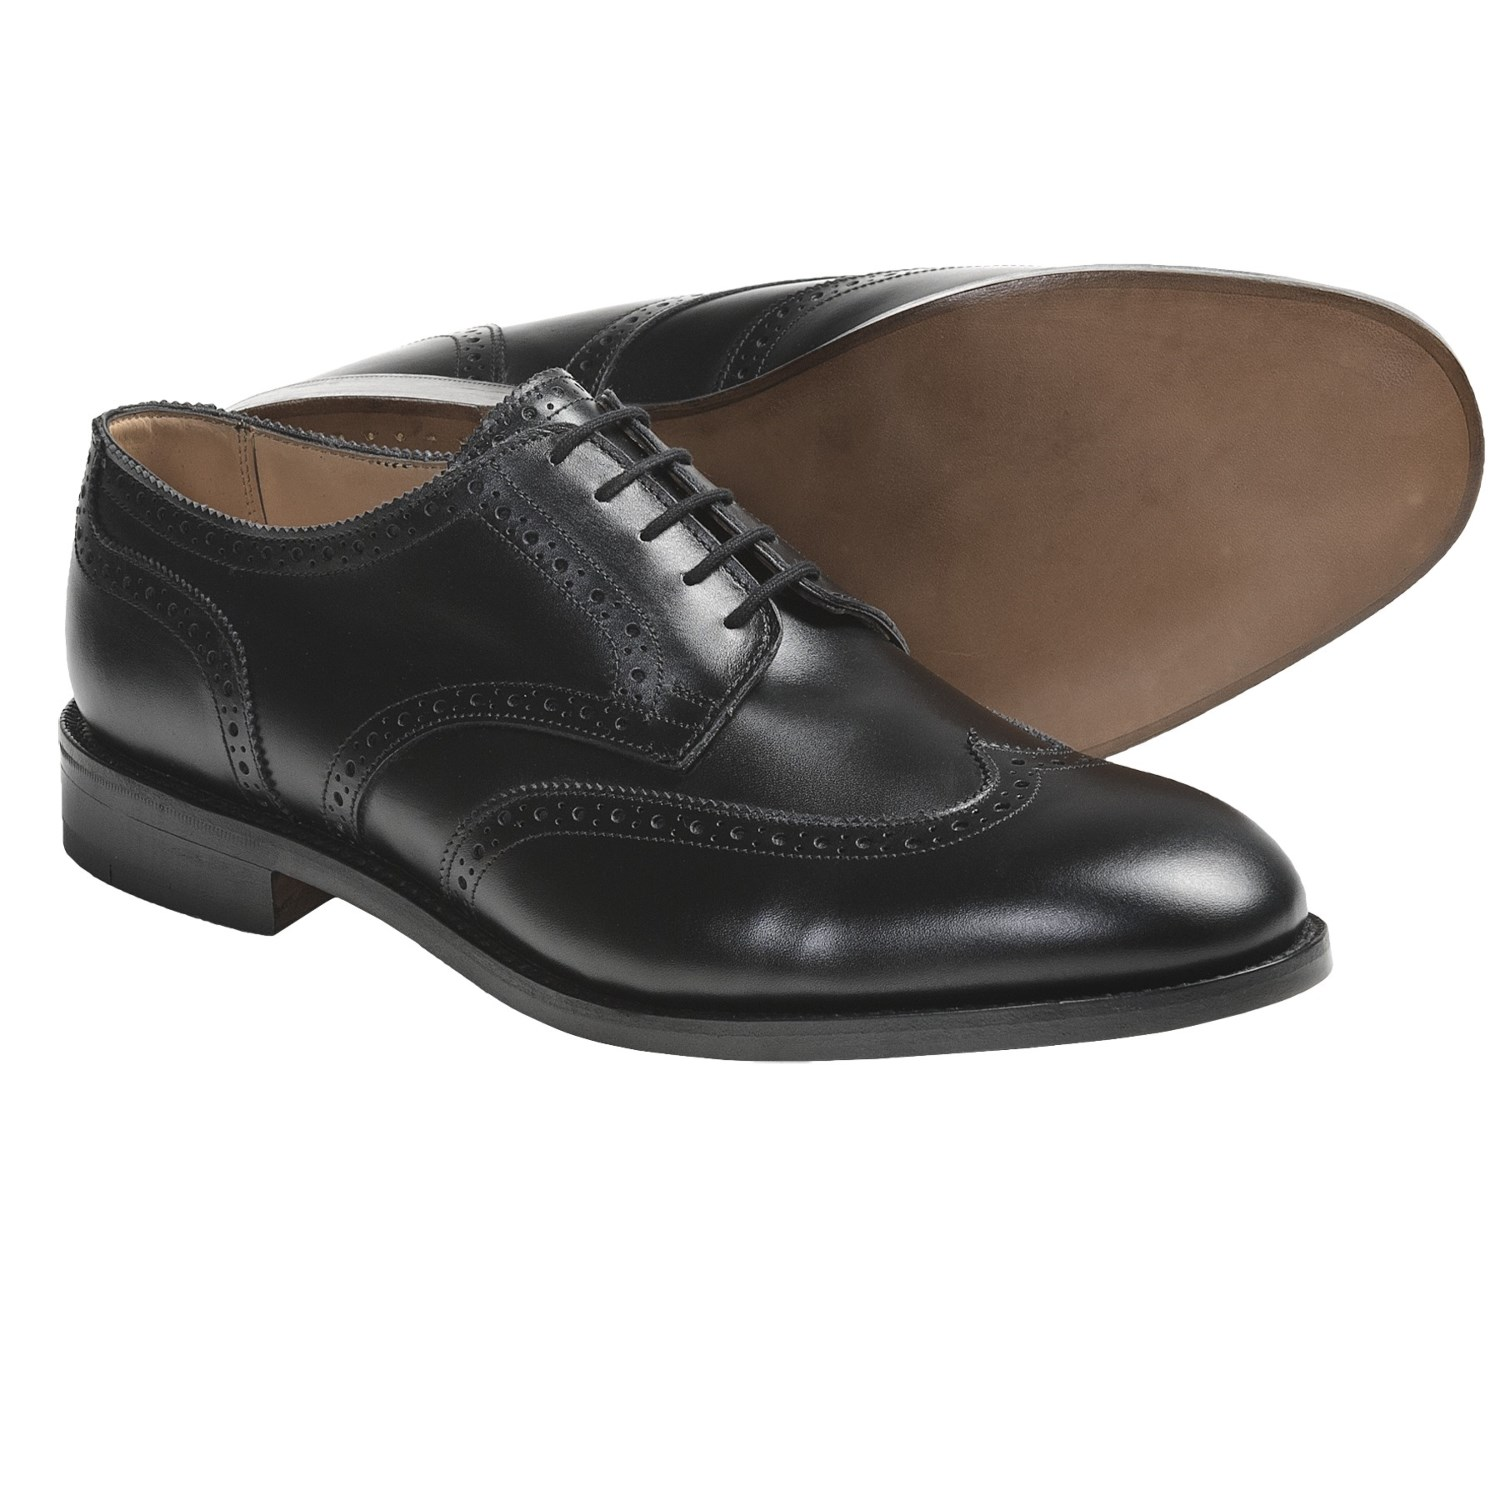 ... Whitman Wingtip Shoes - Oxfords, Calf Leather (For Men) in Black Calf